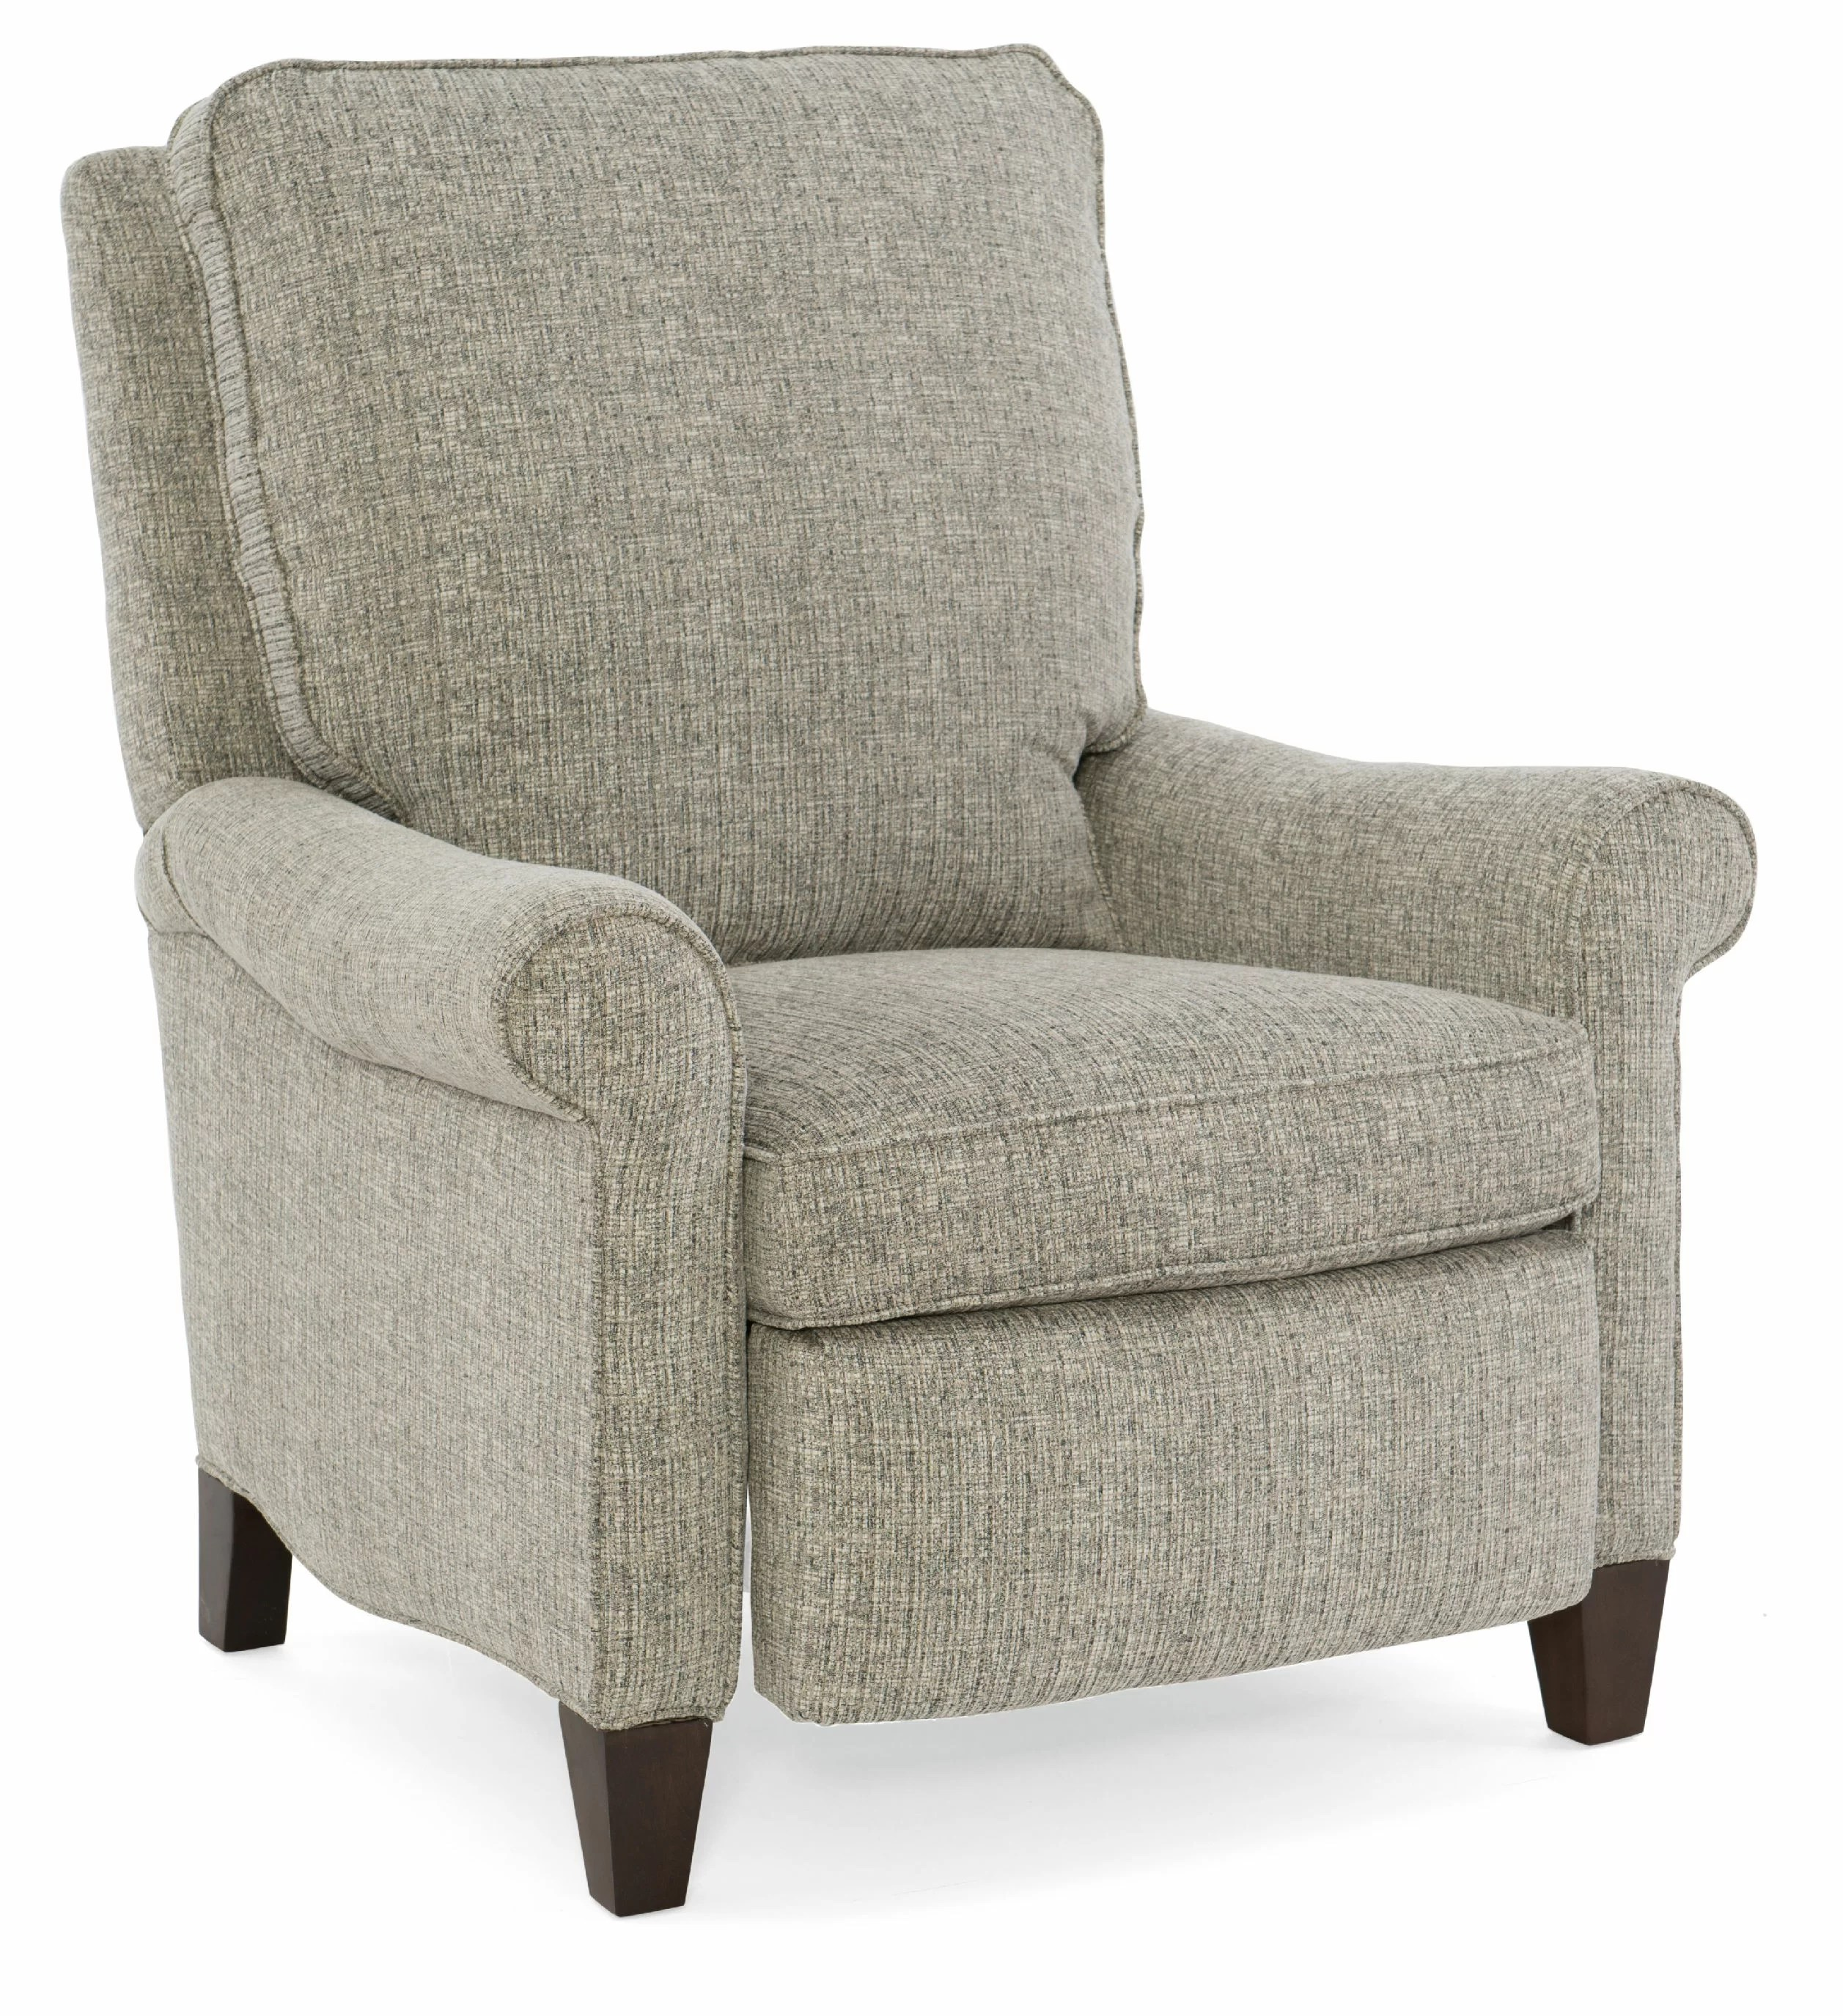 Sam Moore Chairs Eleni Manual Recliner